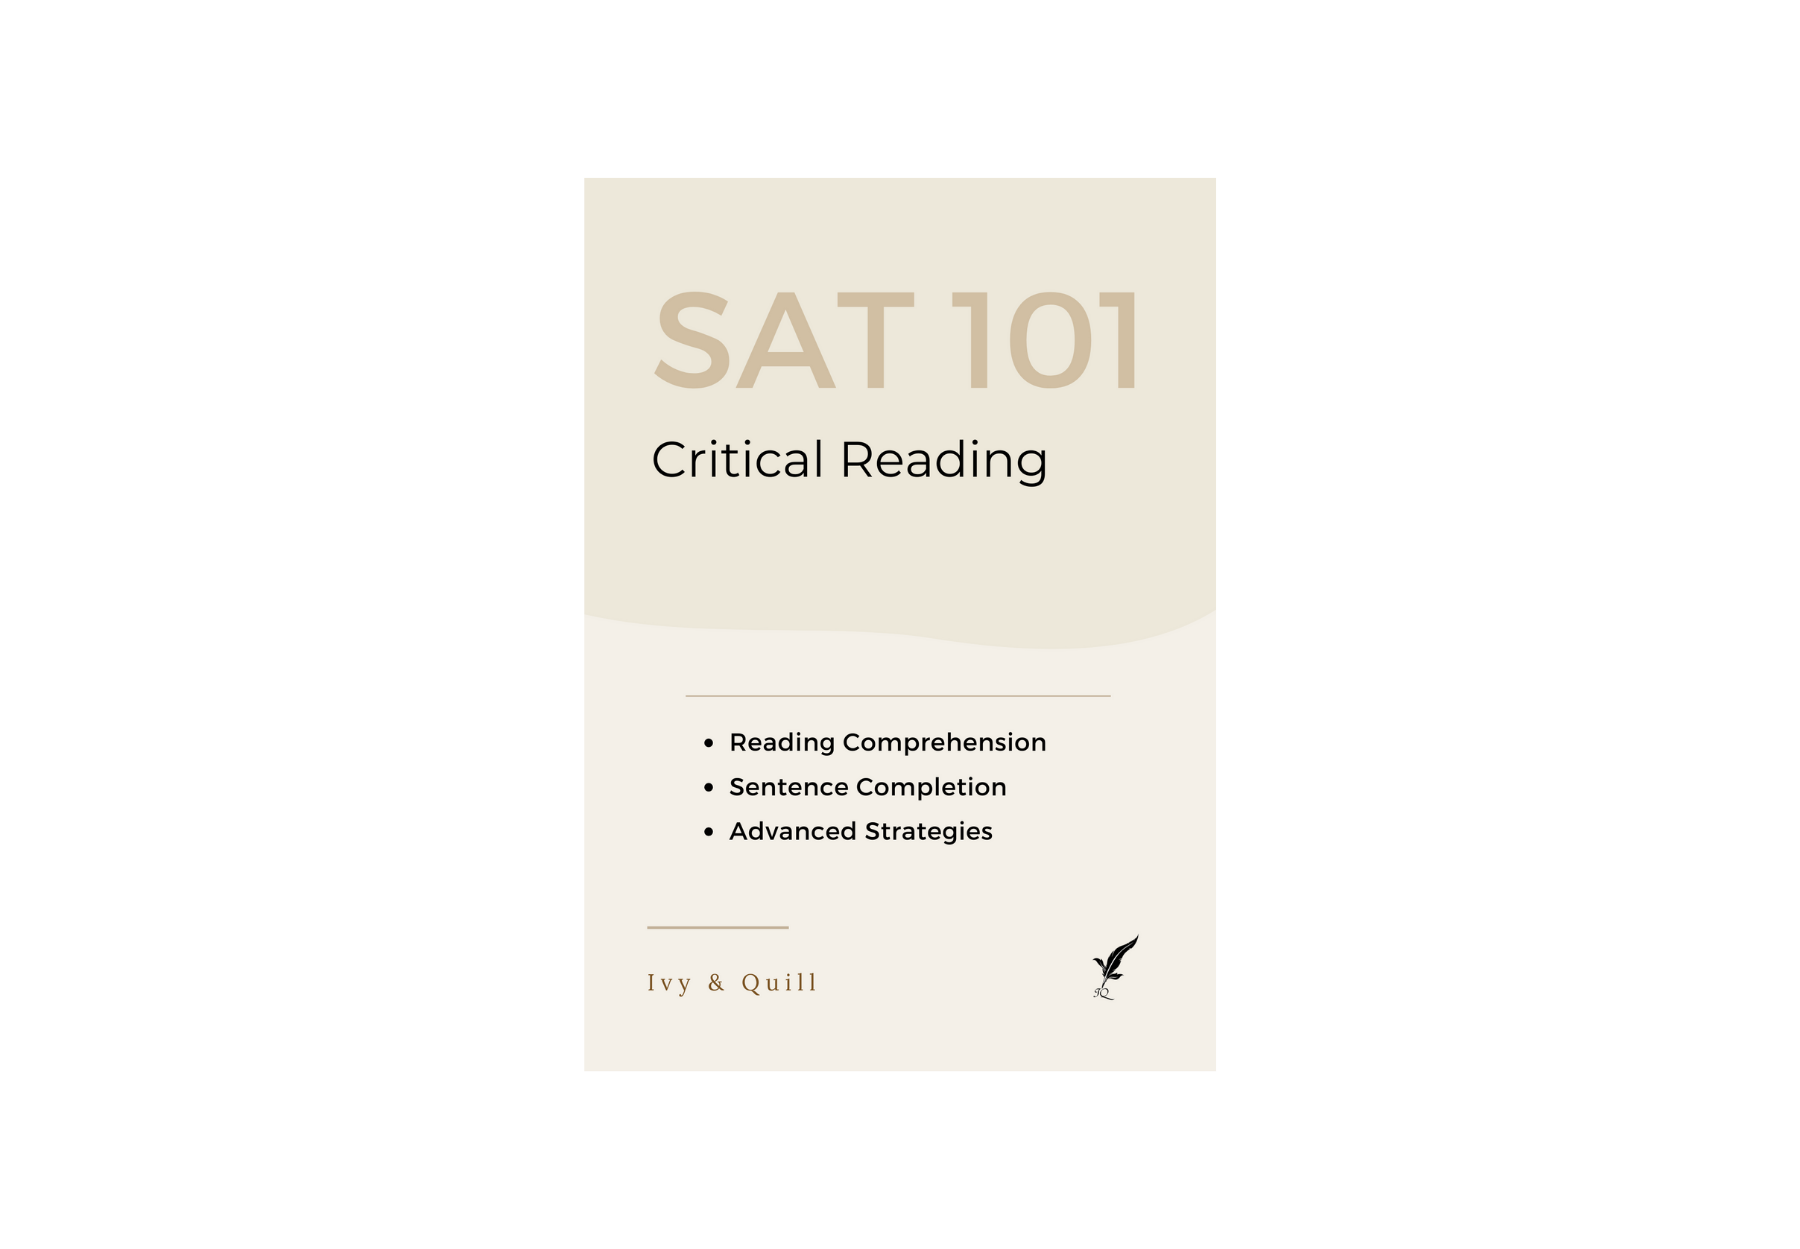 Ivy & Quill - Intro to the SAT Critical Reading Section